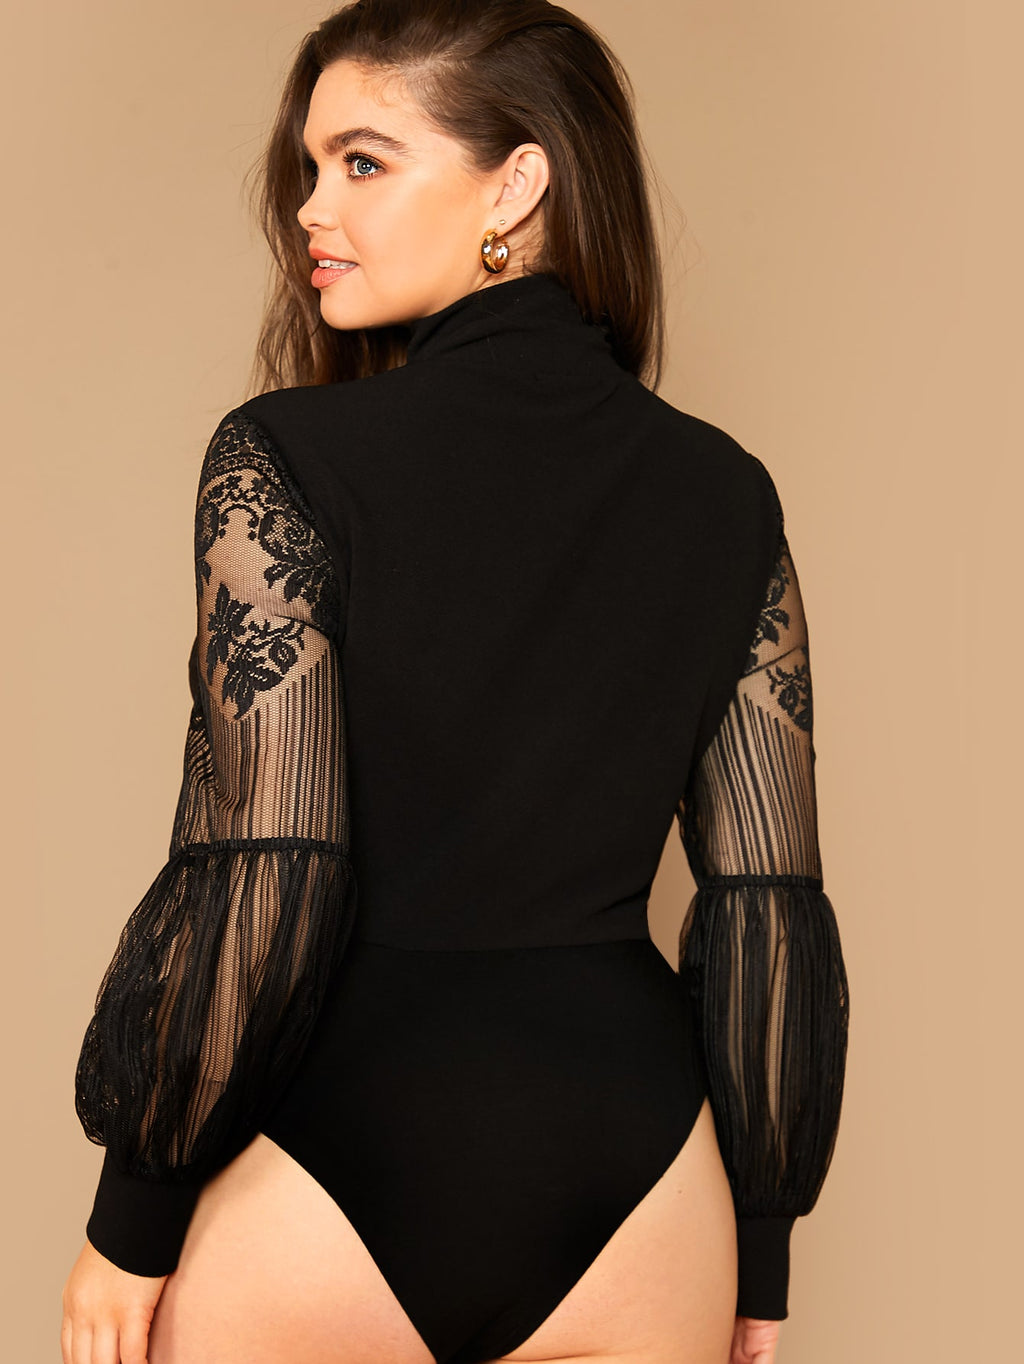 Plus Size Lace Lantern Sleeve Bodysuit Top